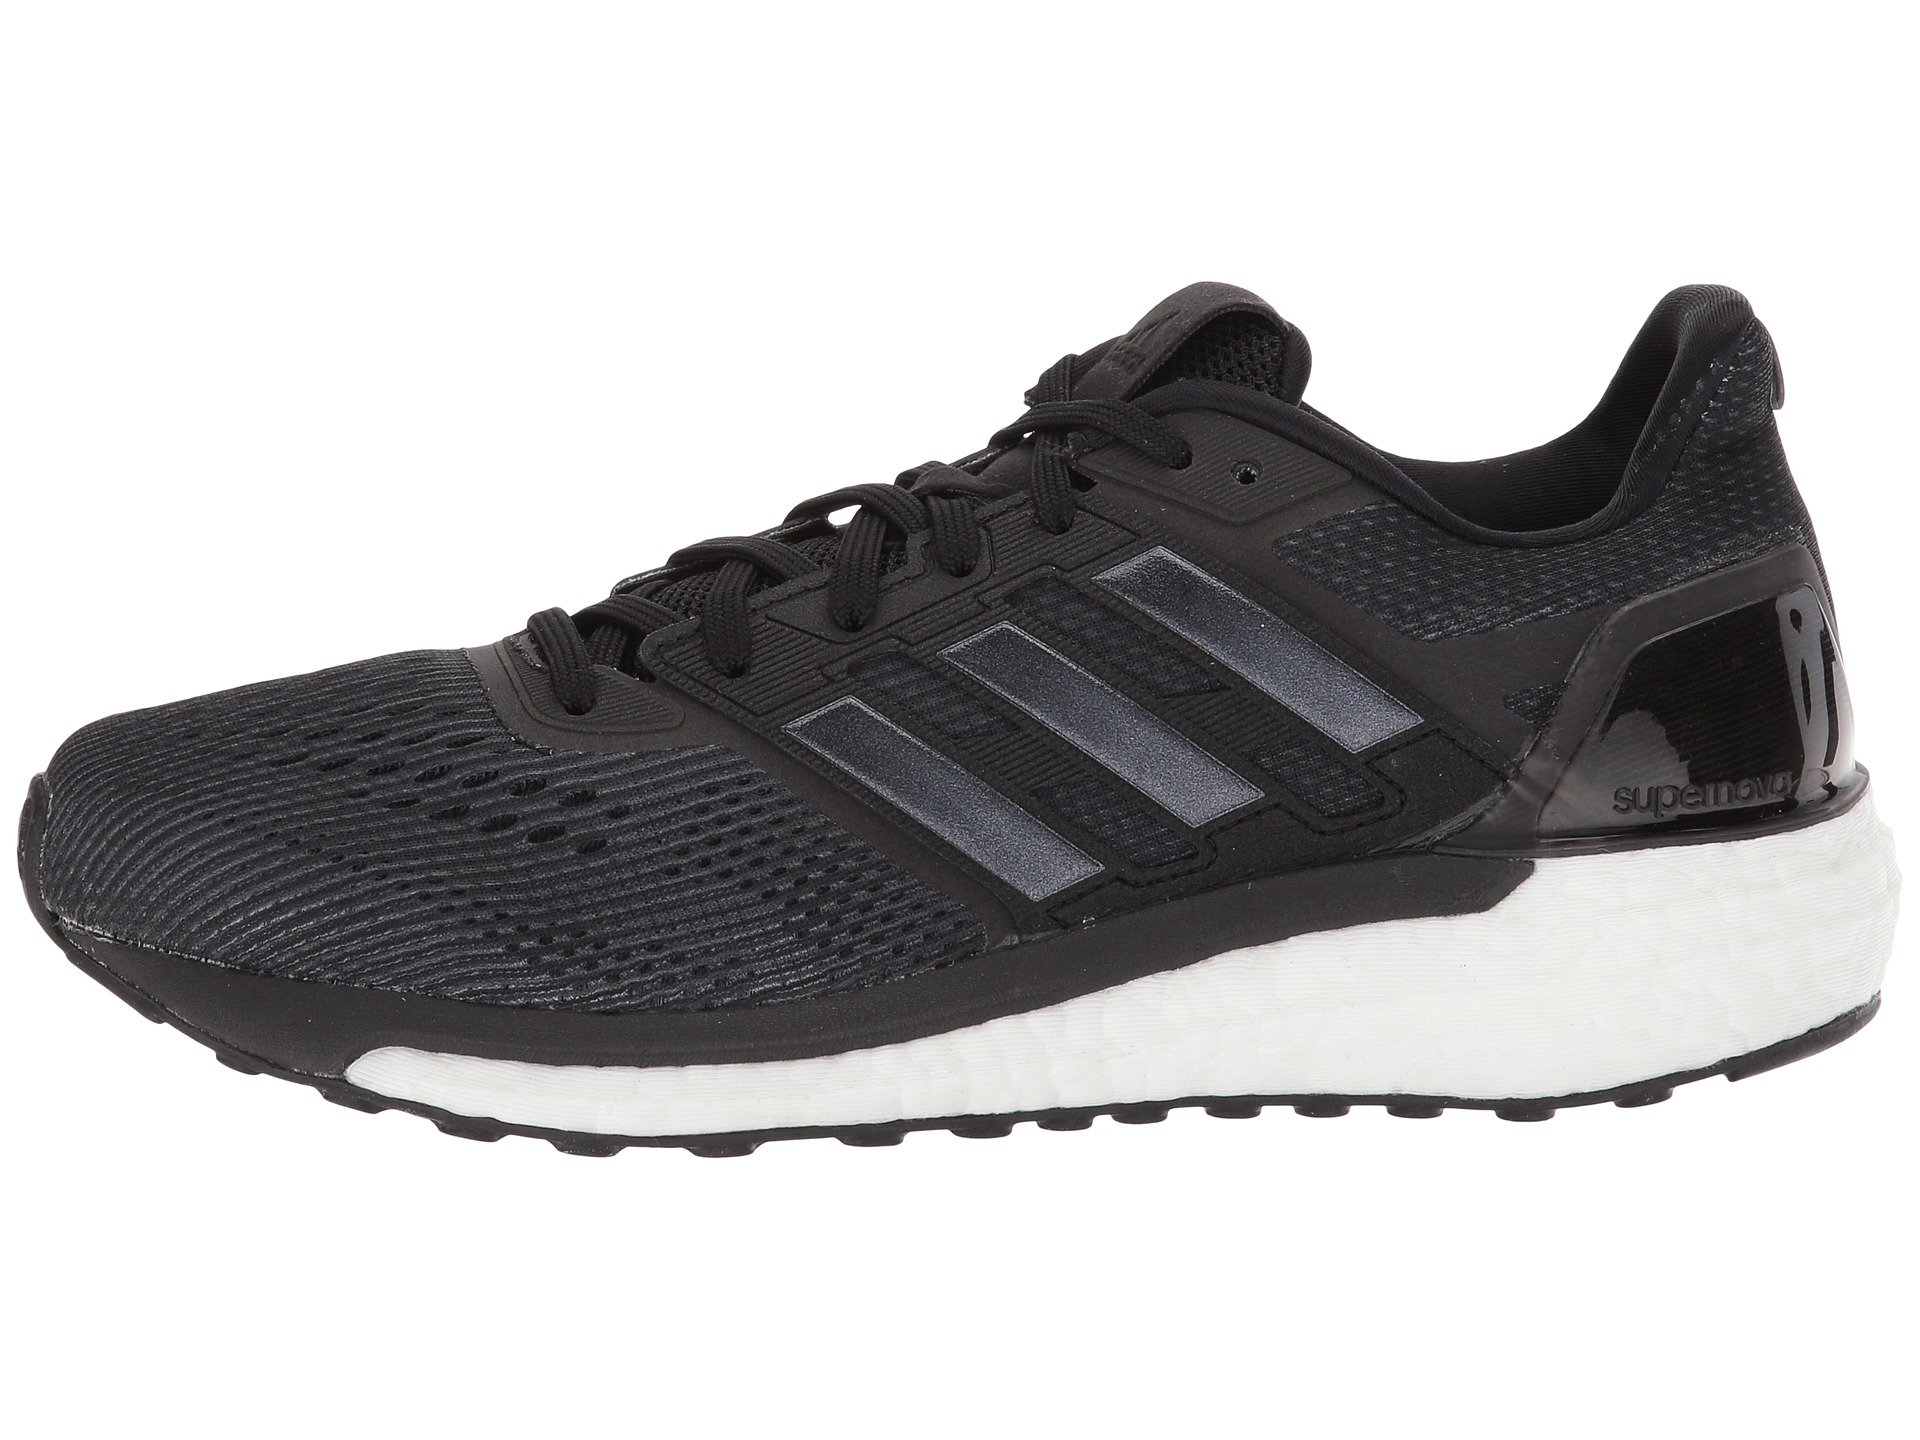 9c68d368afa7f2 Best Adidas Running Shoes